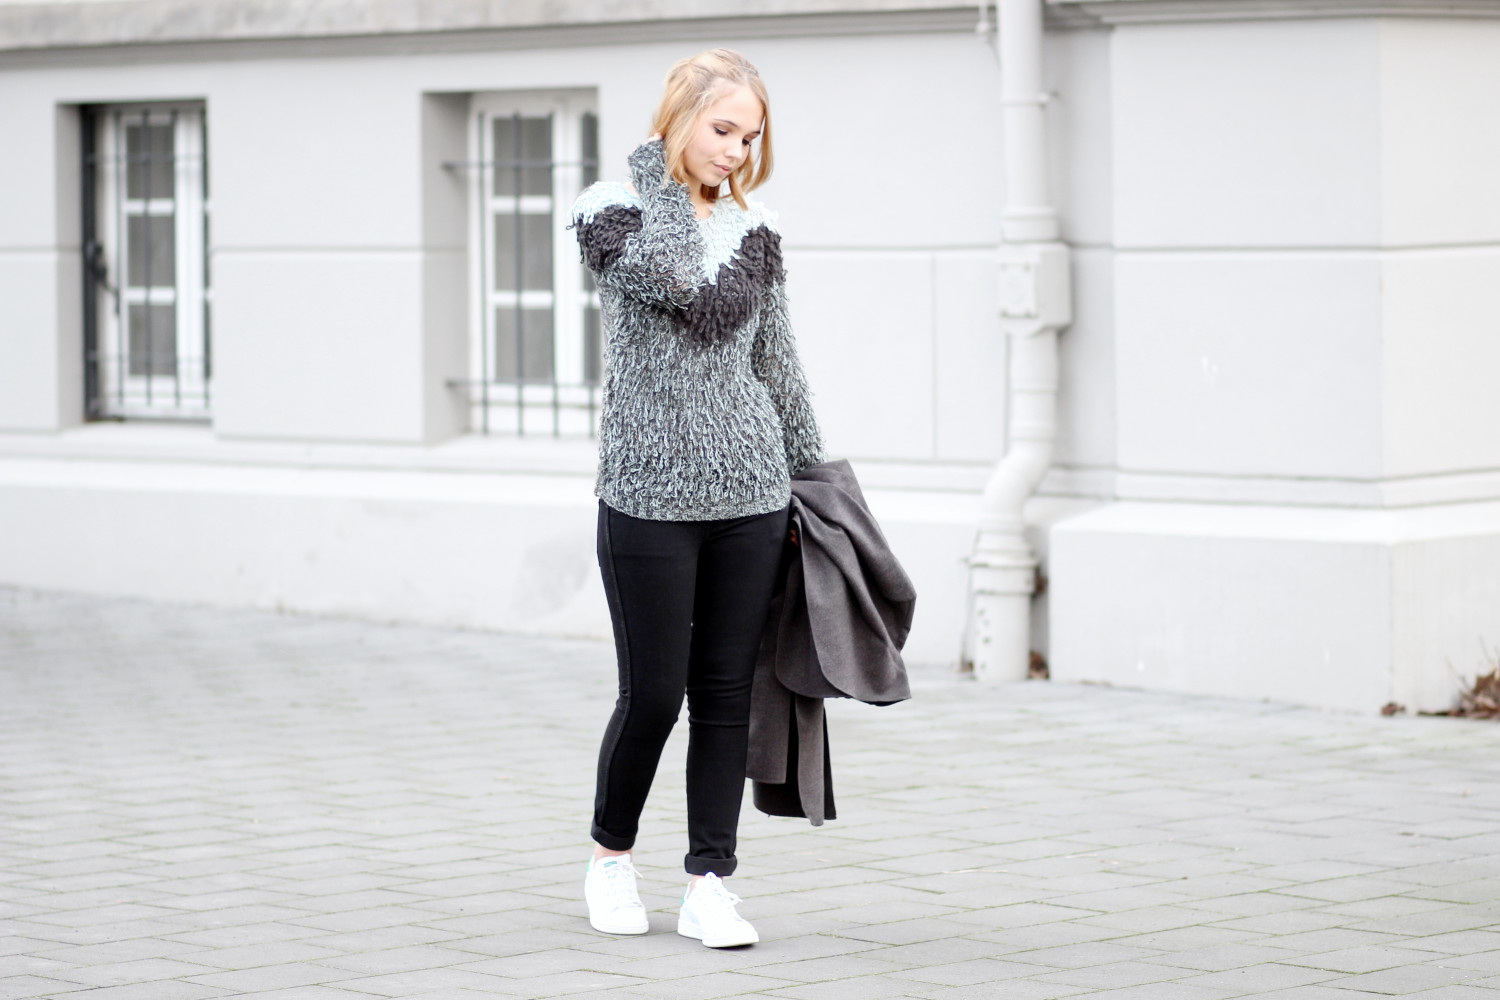 bezauberndenana-fashionblog-streetstyle-lässiges-outfit-winter-about-you (9)